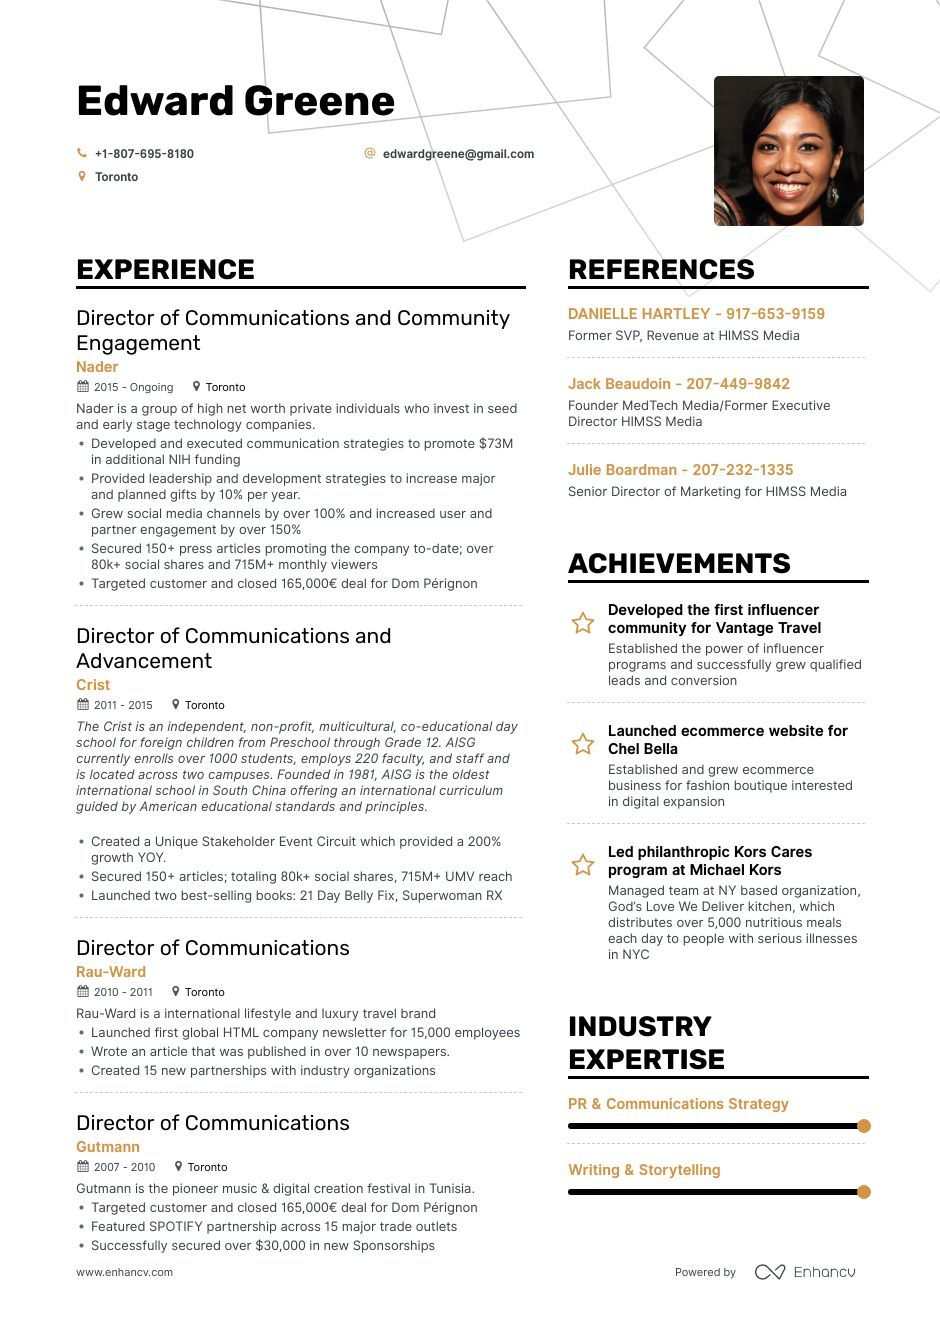 Director Of Communications Resume Example and guide for